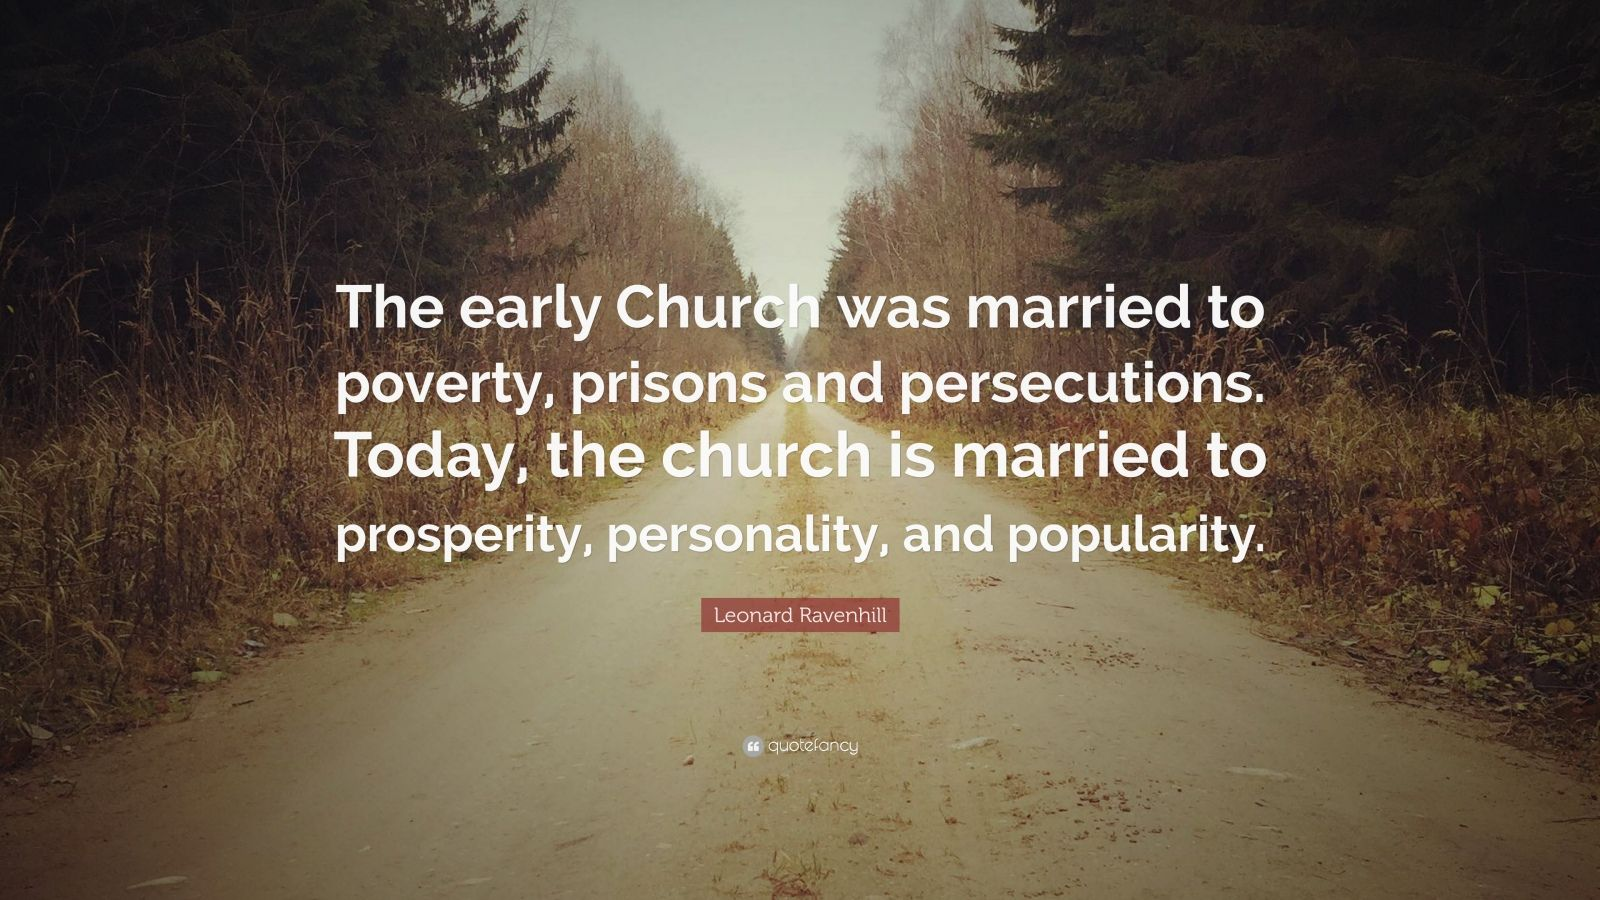 """Leonard Ravenhill Quote: """"The early Church was married to poverty, prisons and persecutions. Today, the church is married to prosperity, personality, and popularity."""""""